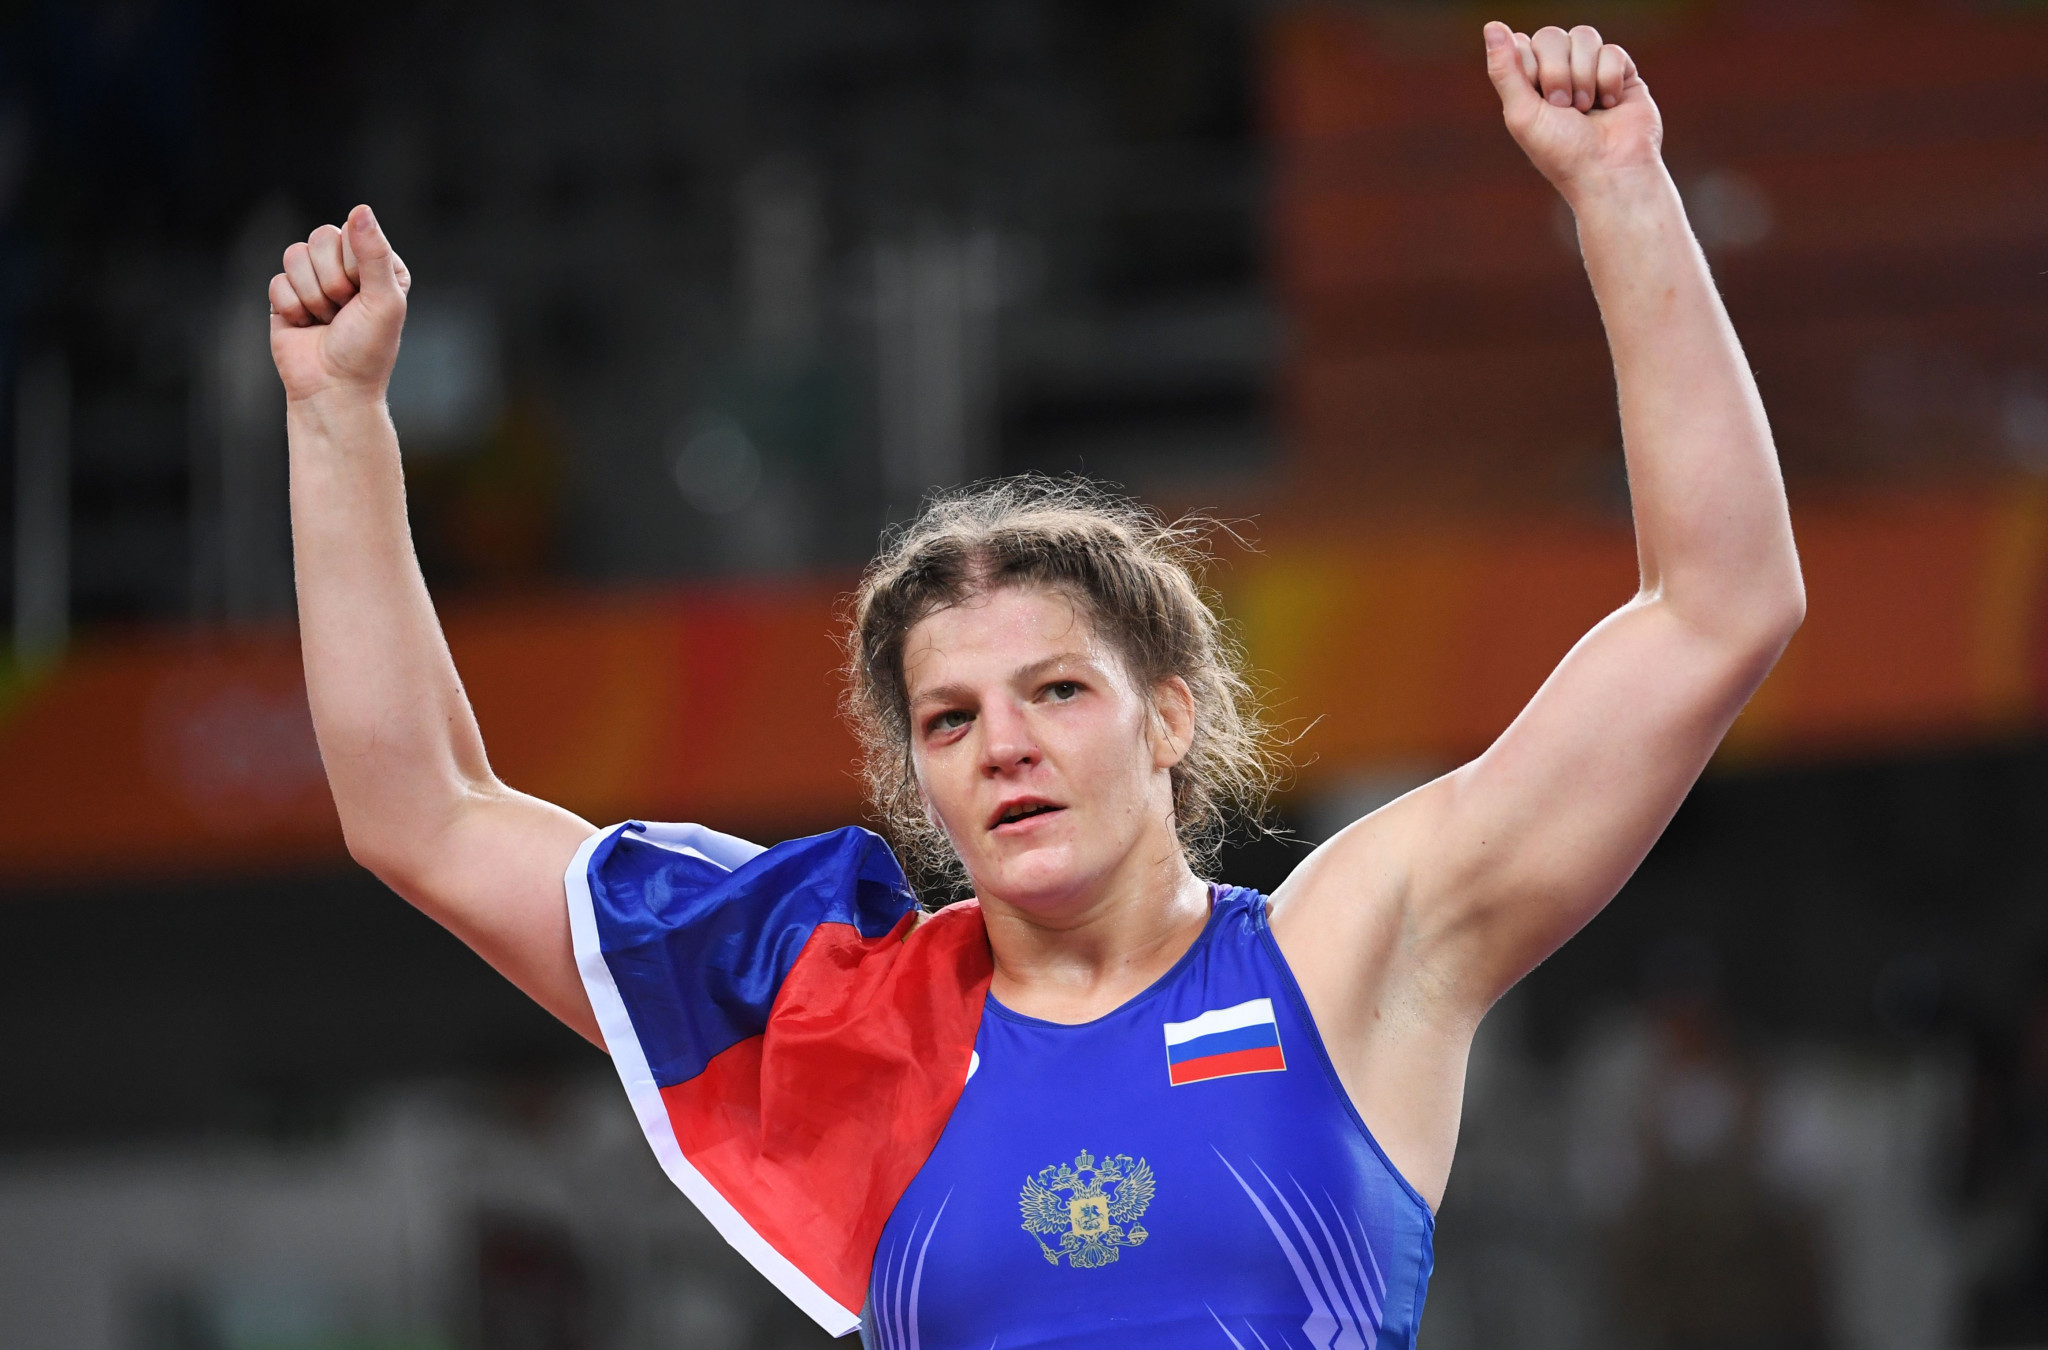 Bukina ends Adar's reign as Russia shine in women's events at European Wrestling Championships